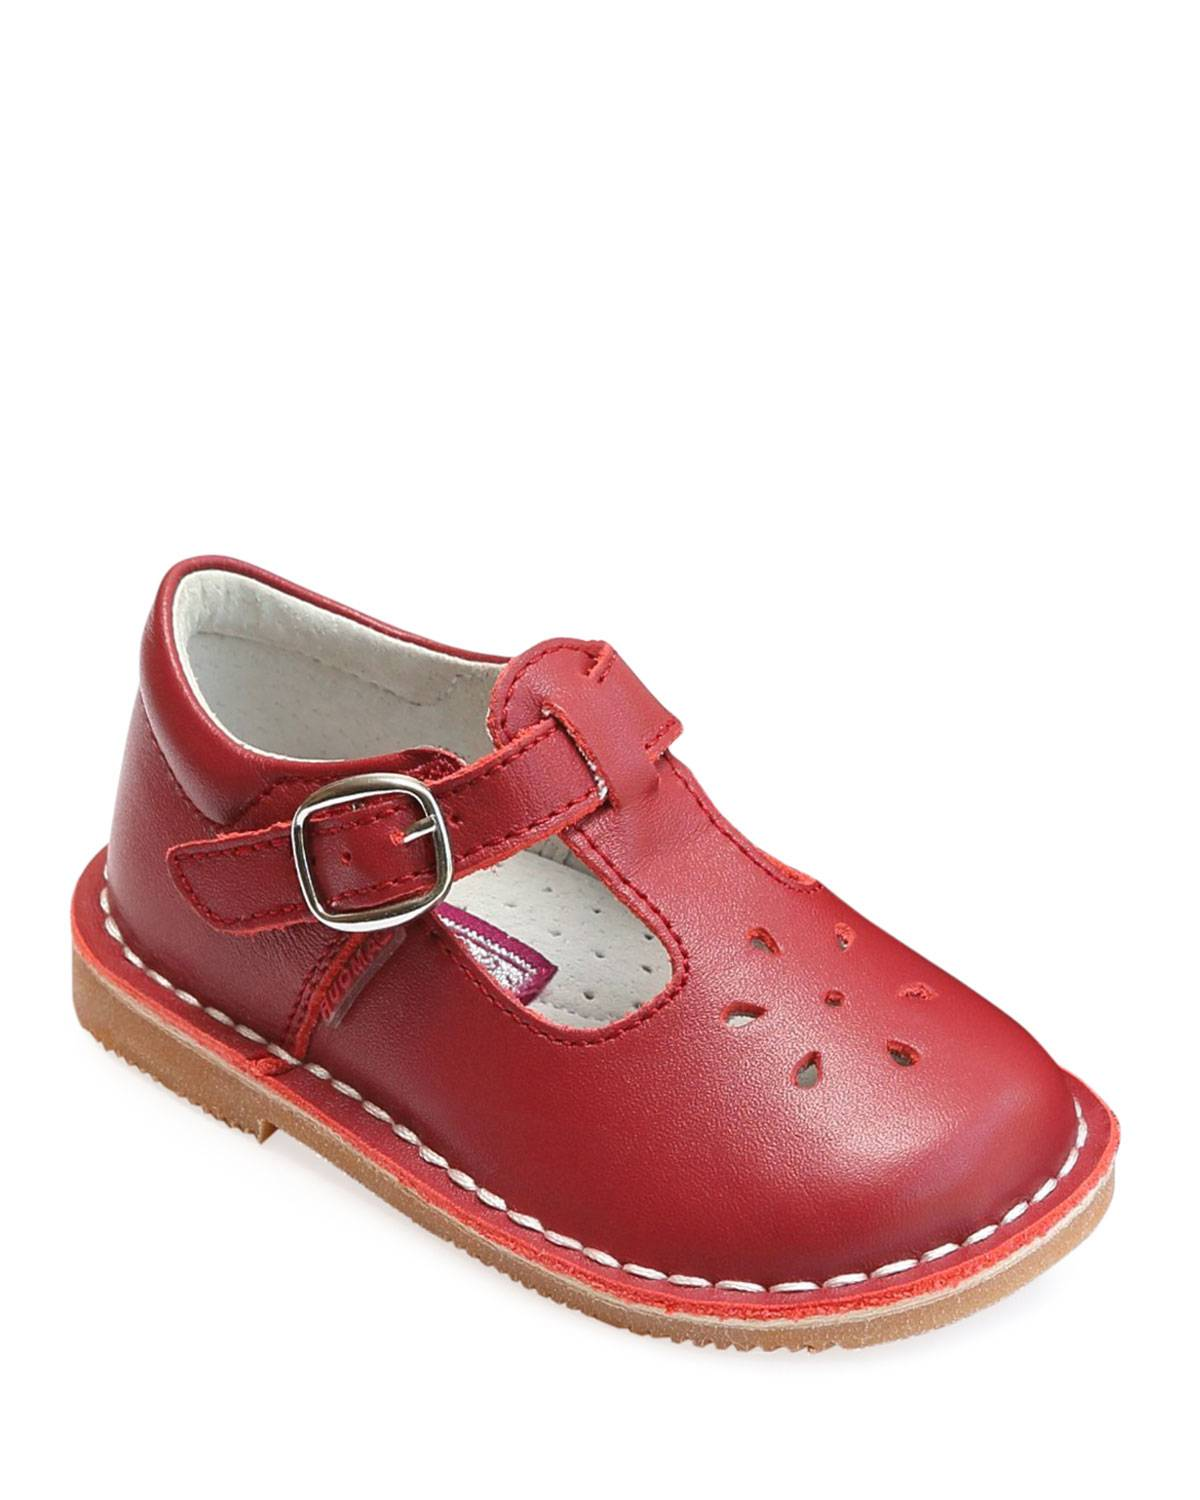 L'Amour Shoes Joy Leather Cutout T-Strap Mary Jane, Baby/Toddler/Kids  - female - RED - Size: 13 Kid